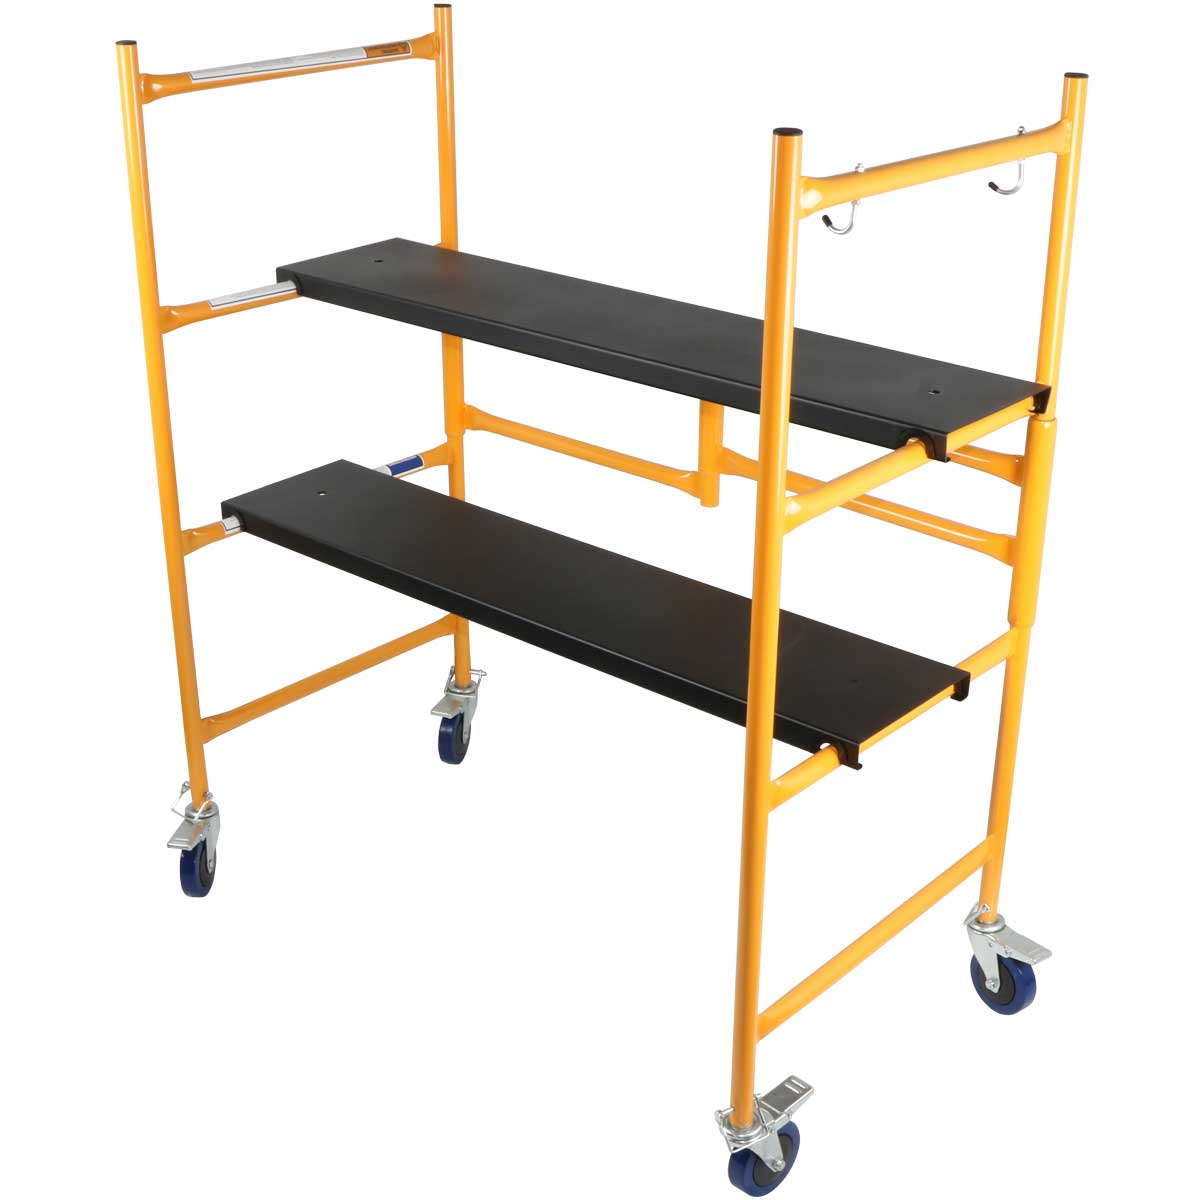 Renegade 4' Portable Scaffolding - Light Duty